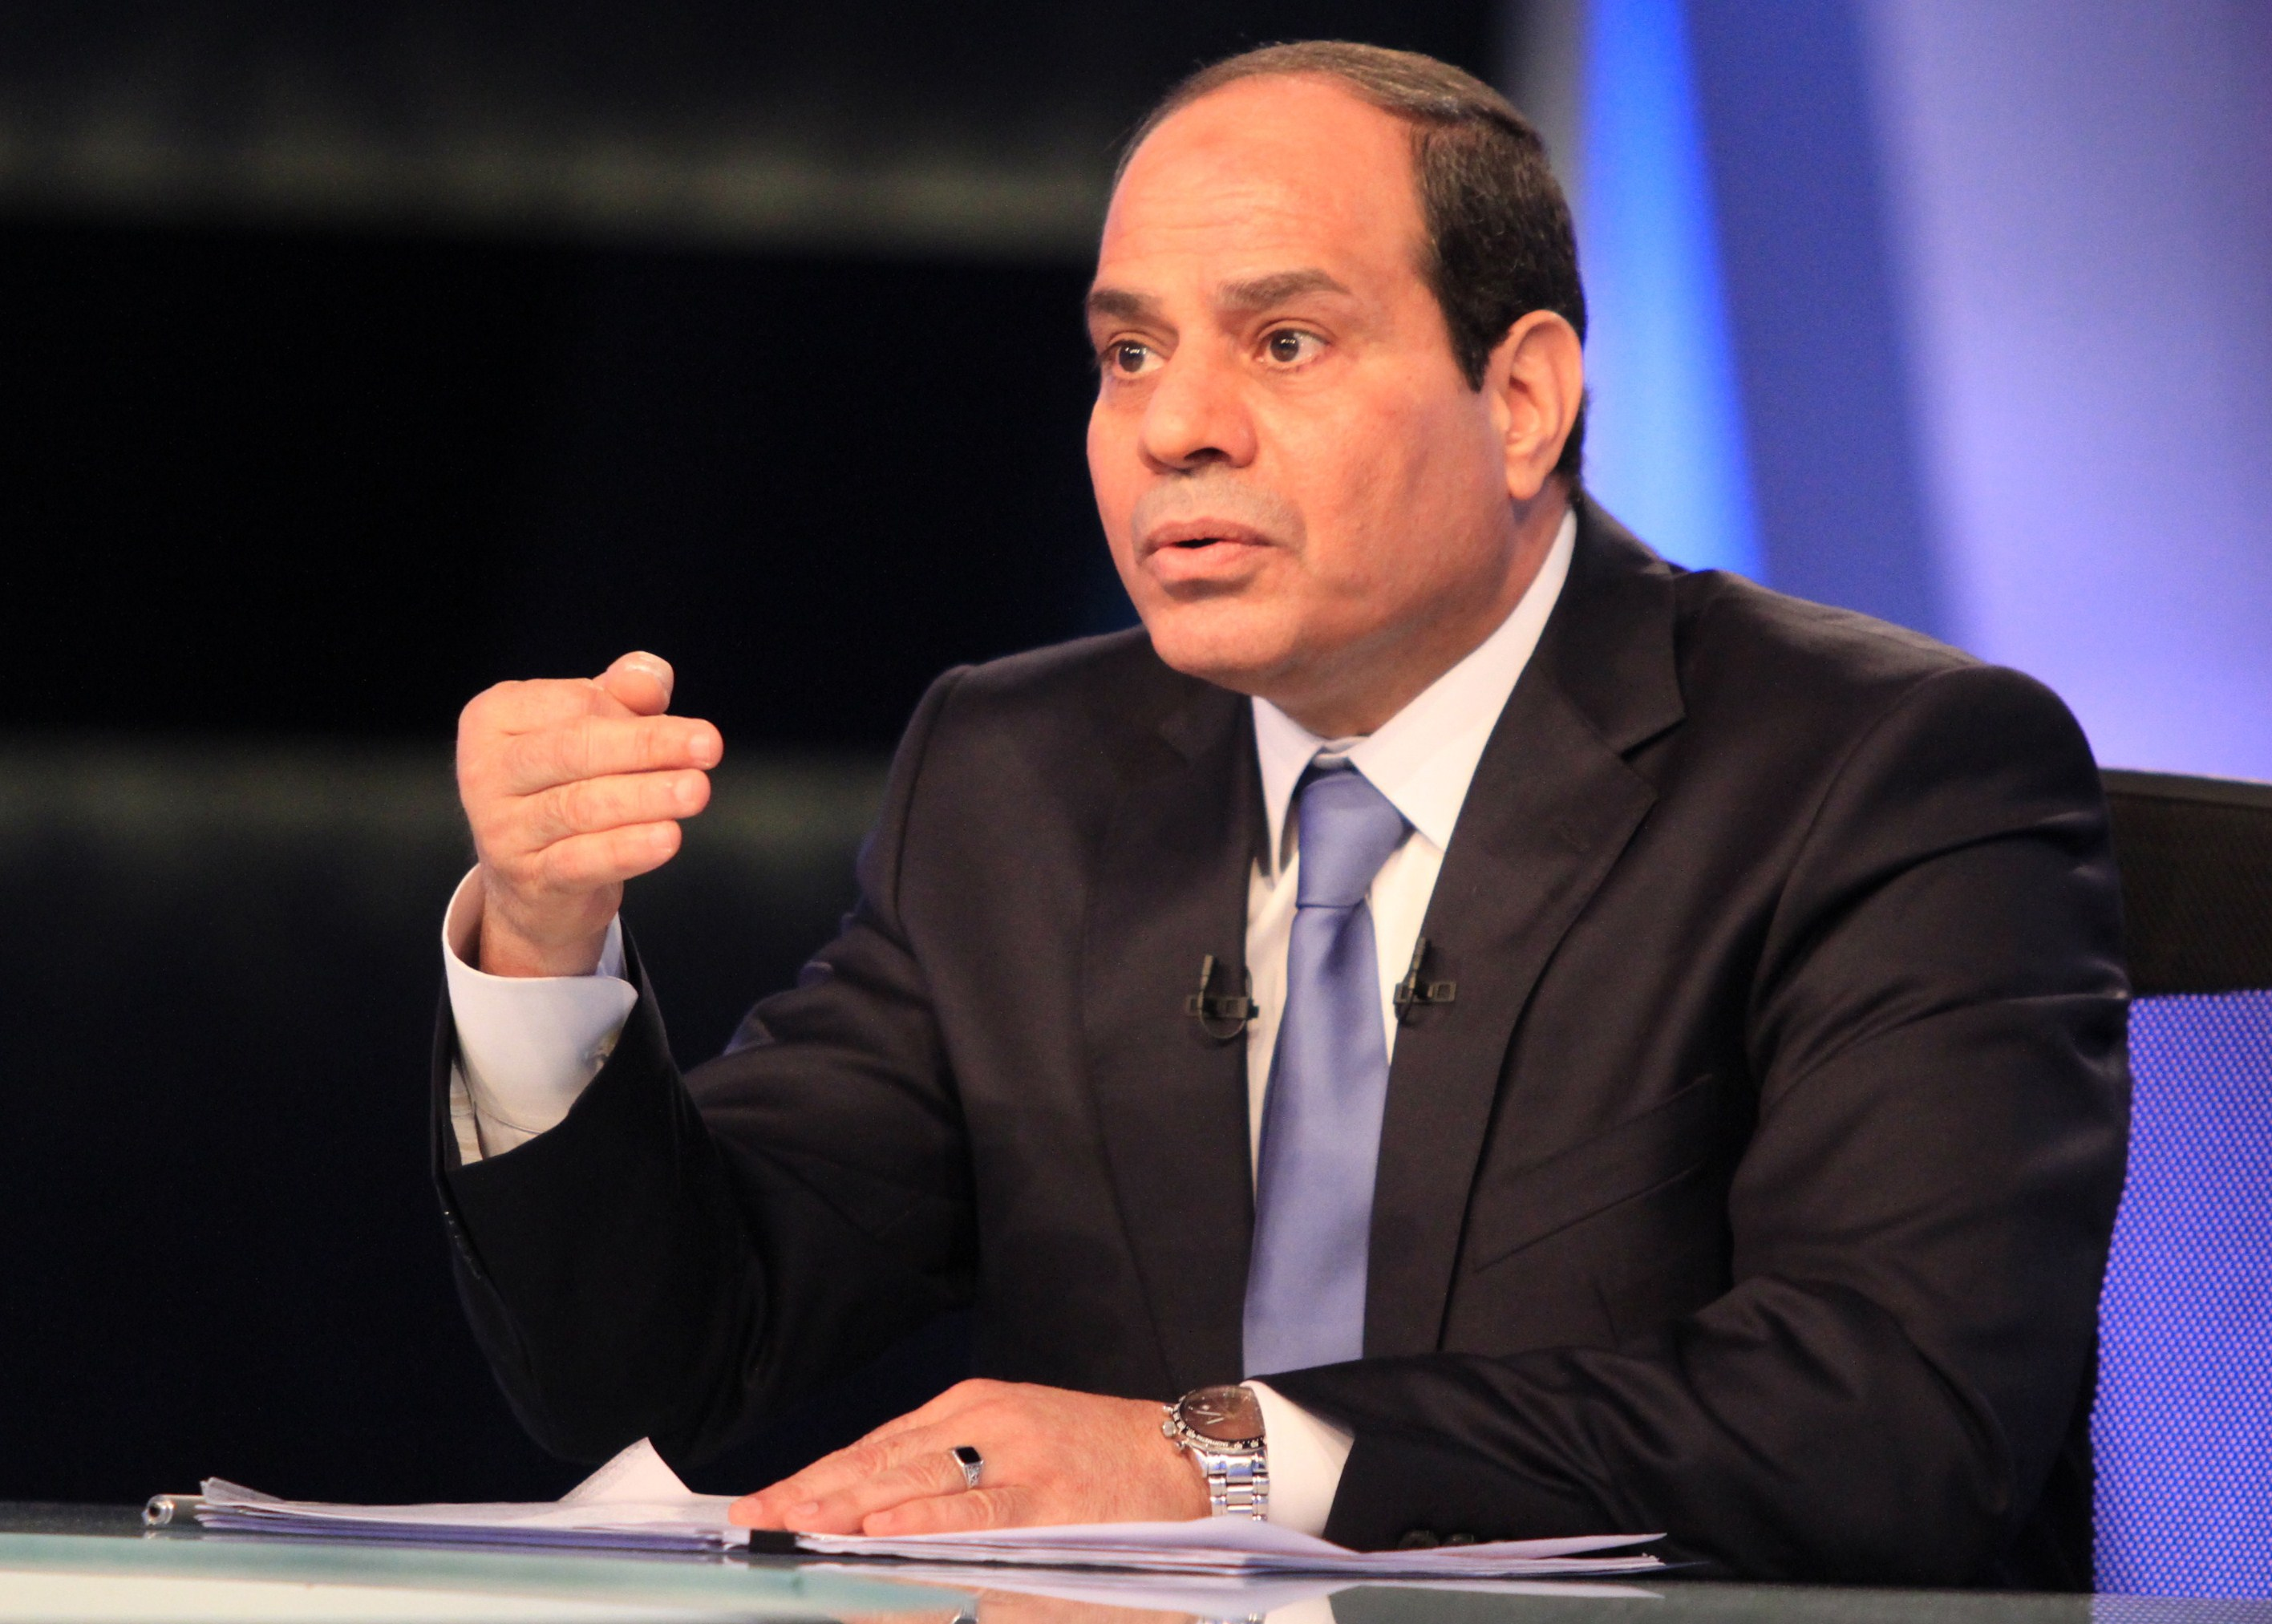 Egypt's ex-army chief and leading presidential candidate Abdel Fattah al-Sisi gives his first television interview since announcing his candidacy in Cairo on May 4, 2014. Sisi is expected to win the May 26-27 election easily riding on a wave of popularity after he ousted in July Mohamed Morsi, Egypt's first freely elected president. The 59-year-old retired field marshal, dressed in a suit and appearing composed and often smiling in what was a pre-recorded interview, is seen by supporters as a strong leader who can restore stability, but his opponents fear that might come at the cost of freedoms sought in the pro-democracy uprising three years ago.  (AFP PHOTO/STR)